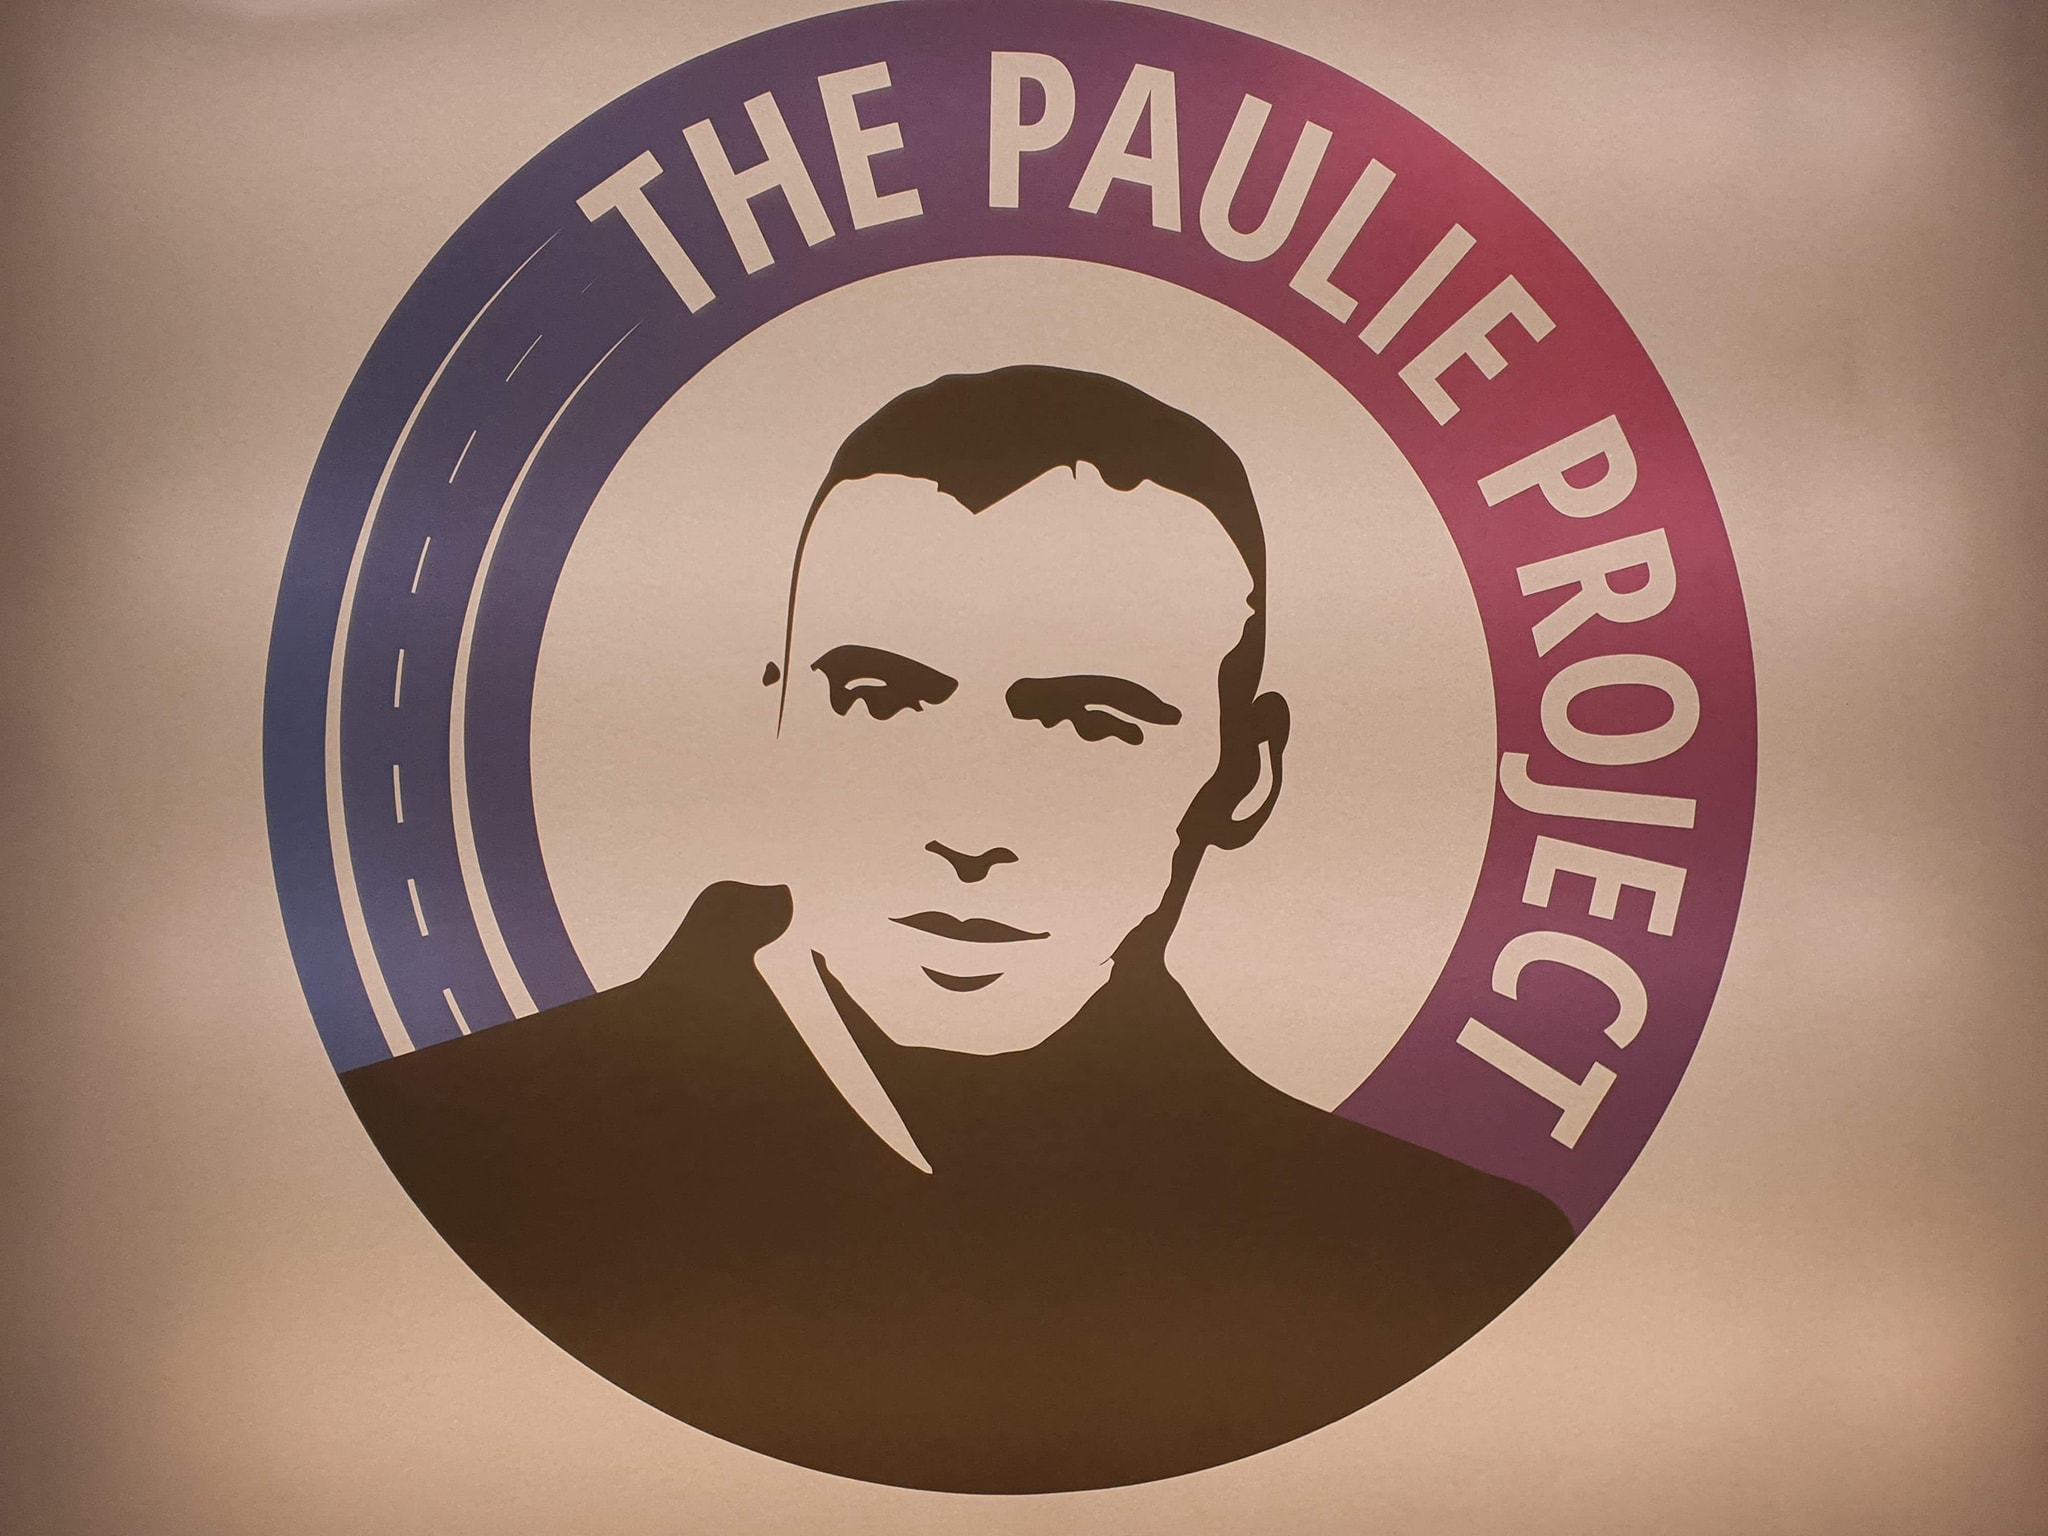 The Paulie Project